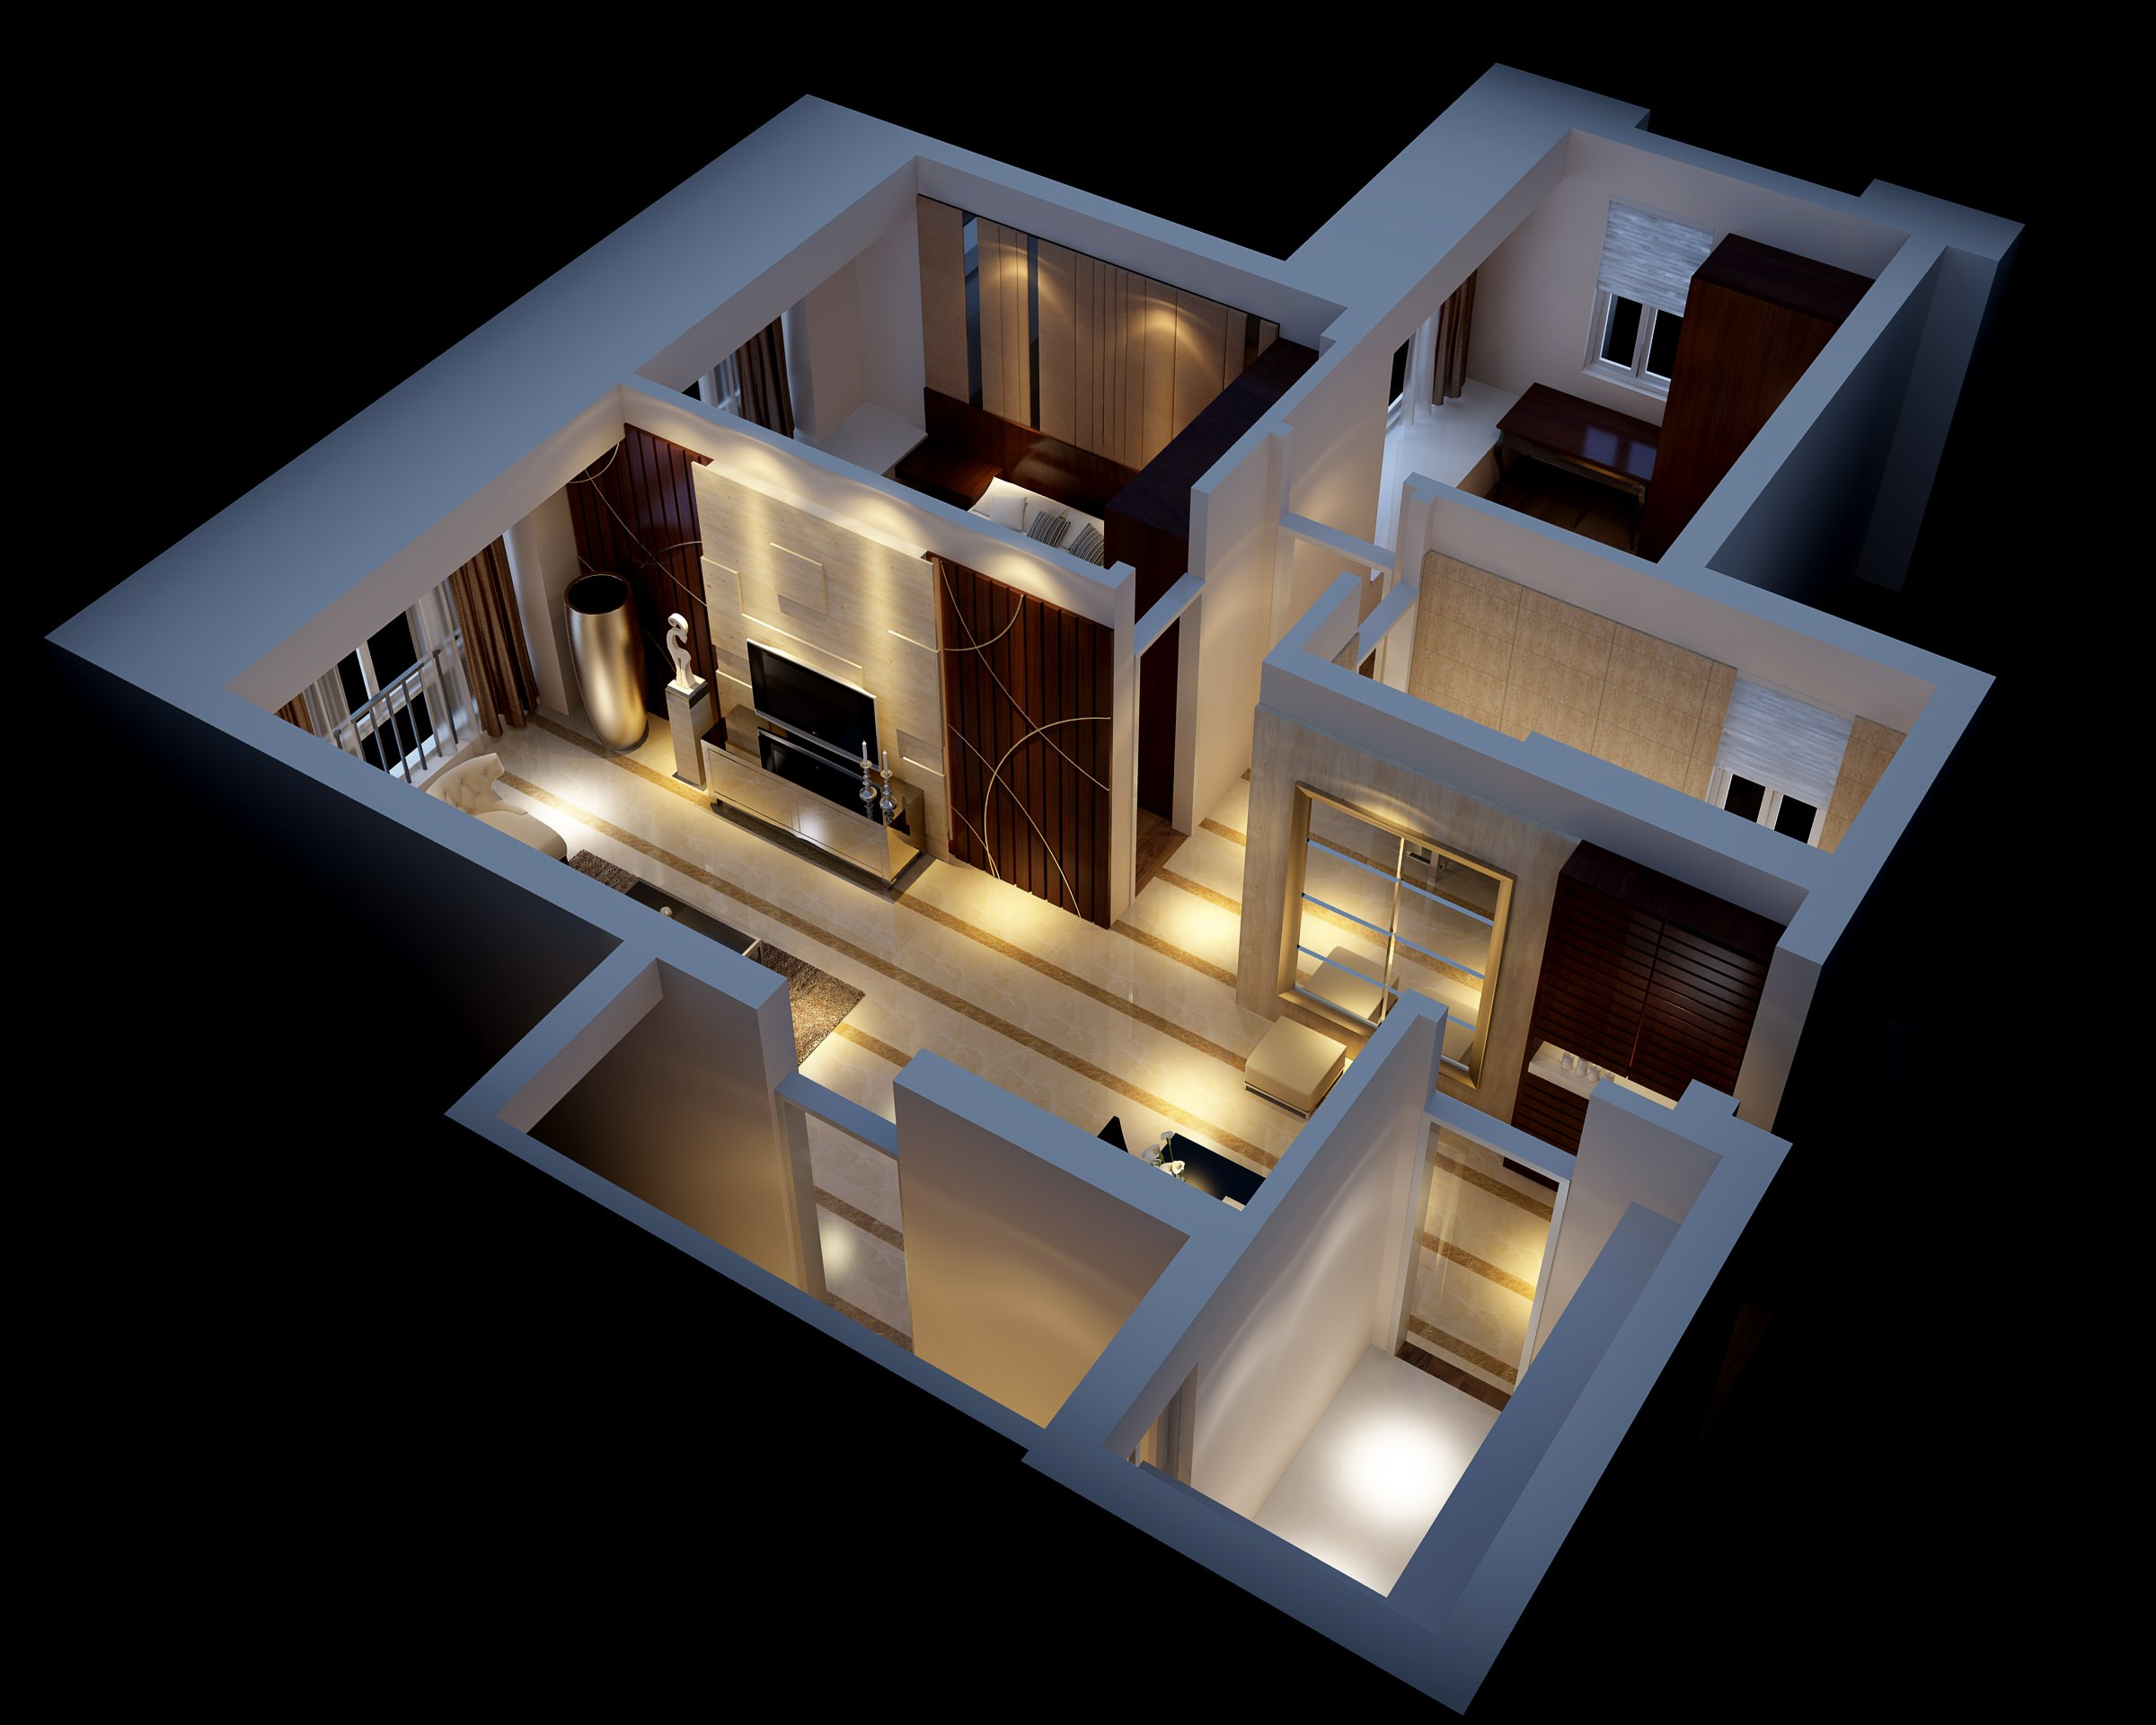 Modern house interior fully furnished 3d model max for Contemporary model house